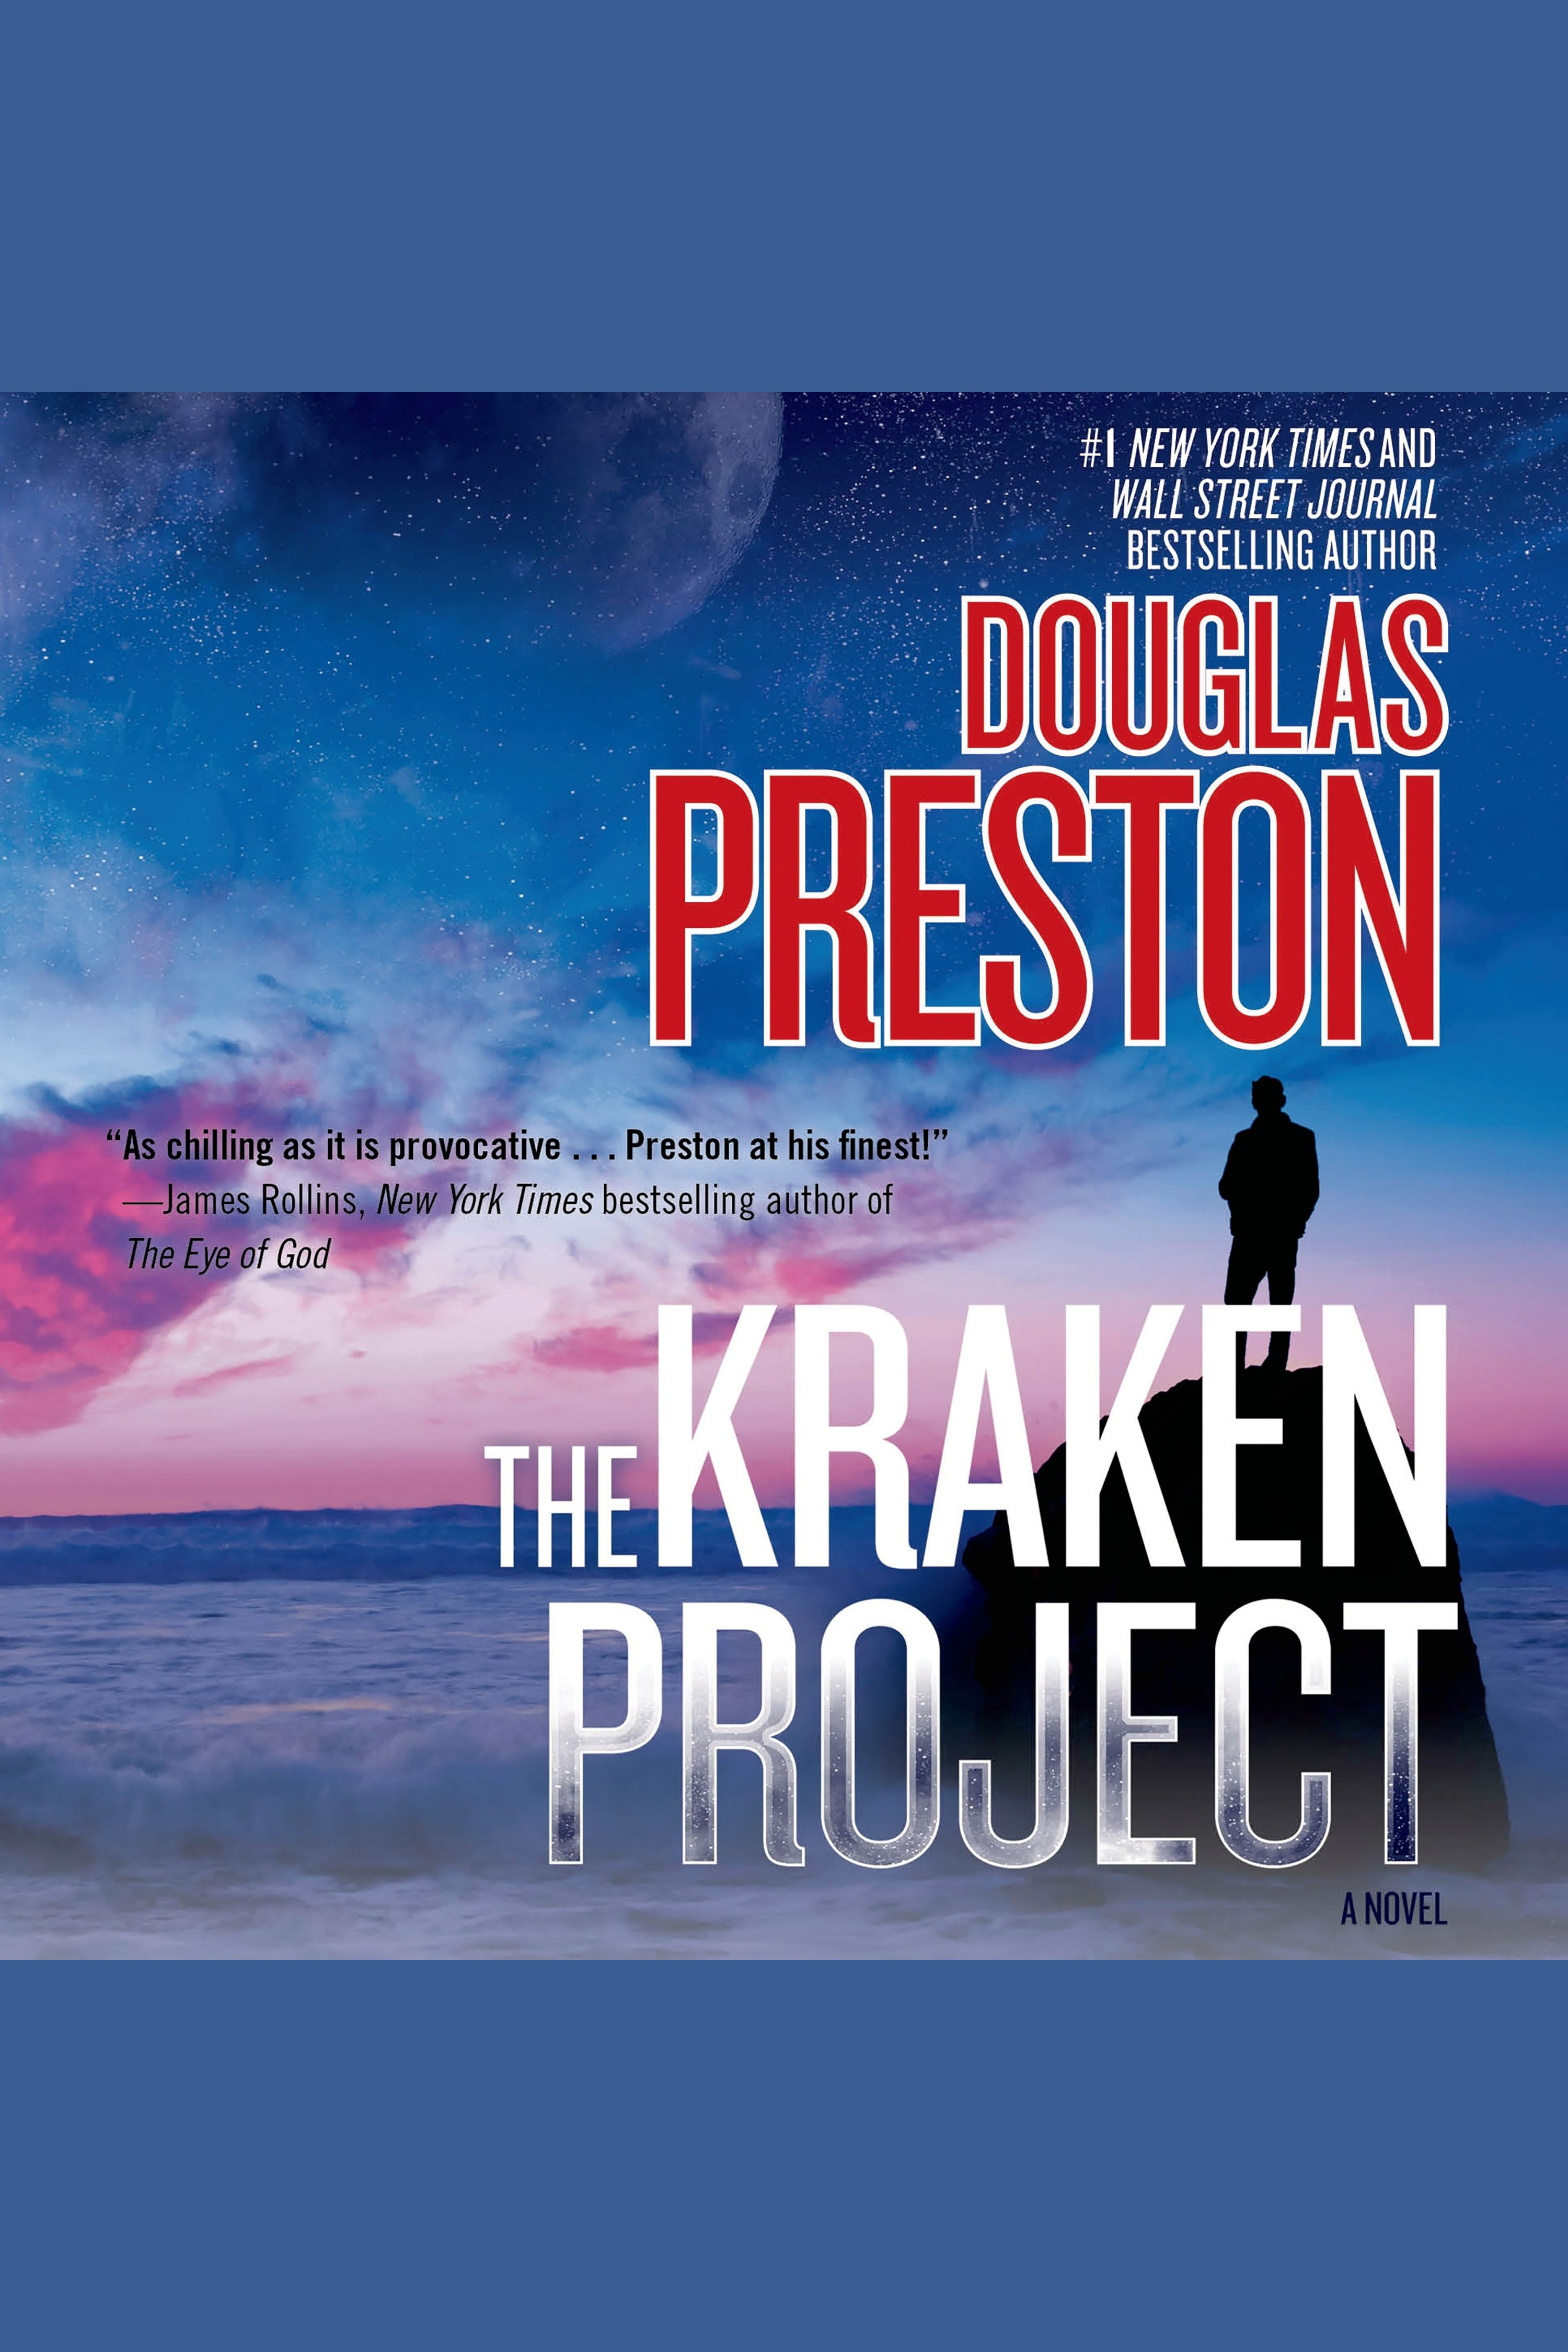 The Kraken Project cover image